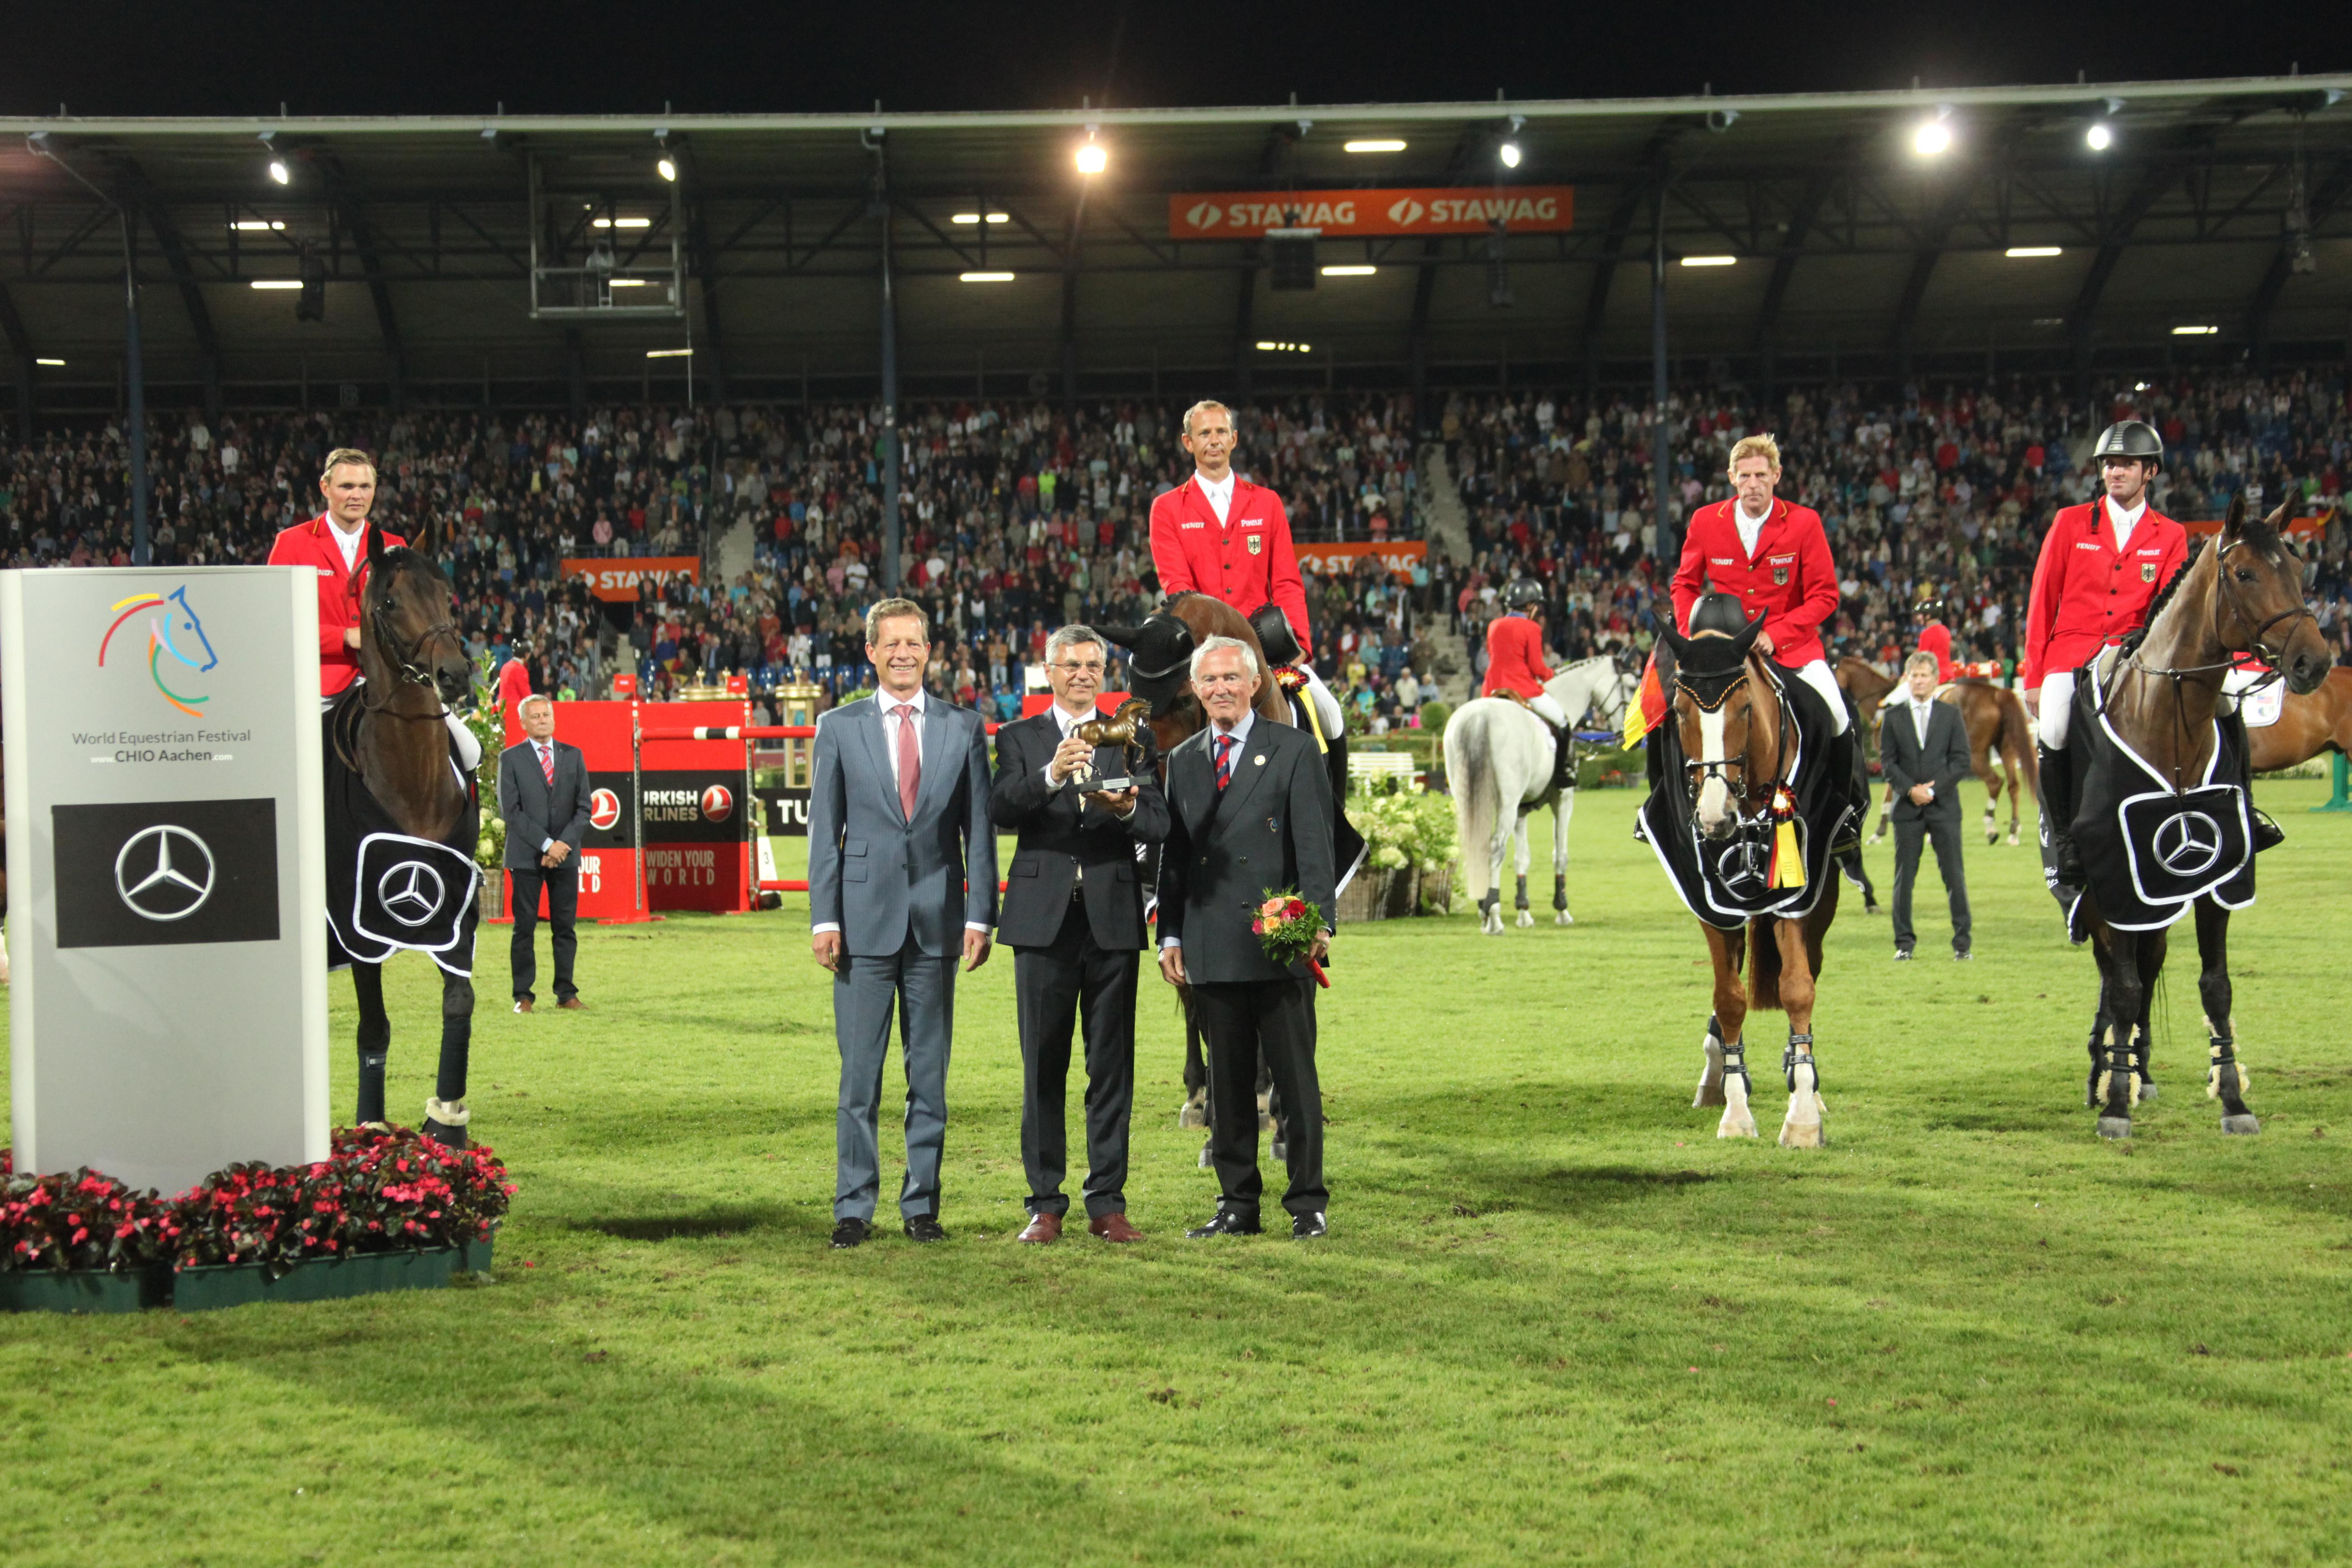 team-germany-nations-cup-aachen-2017.jpg